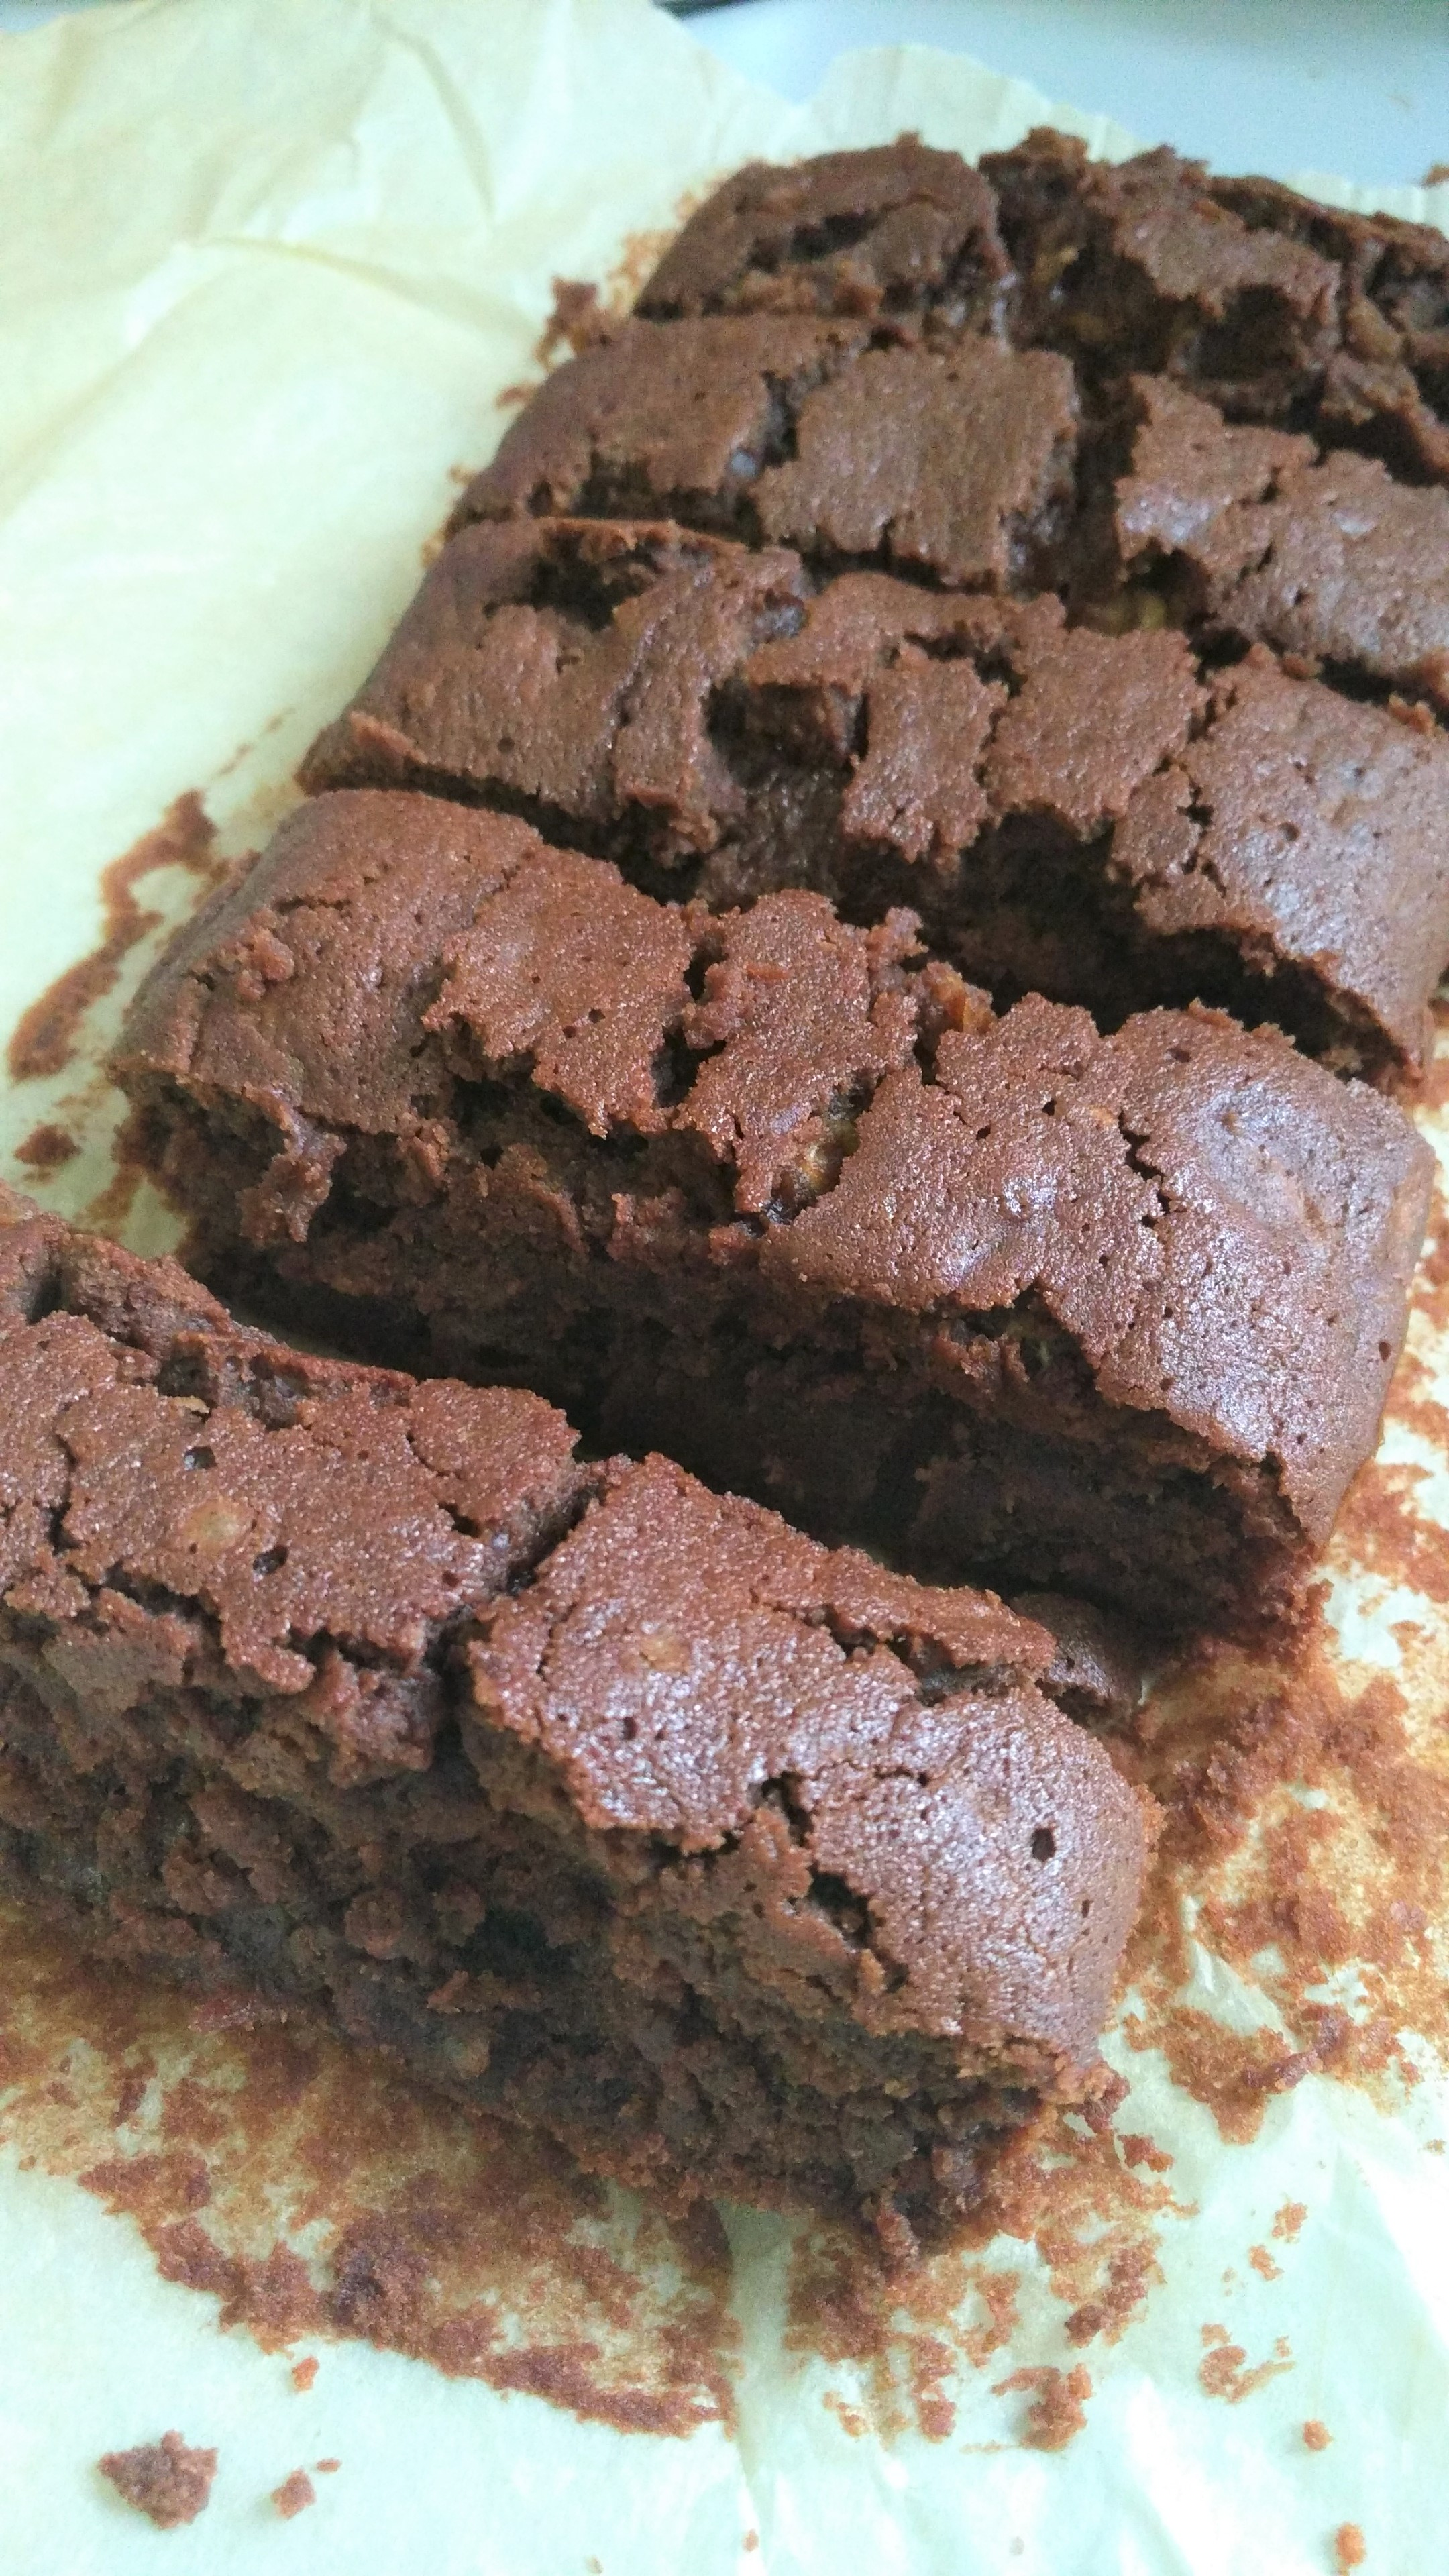 courgette zucchini chocolate brownies fresh out of the oven and sliced on baking paper - a vegan gluten free recipe by Kirstie Anne Wellbeing